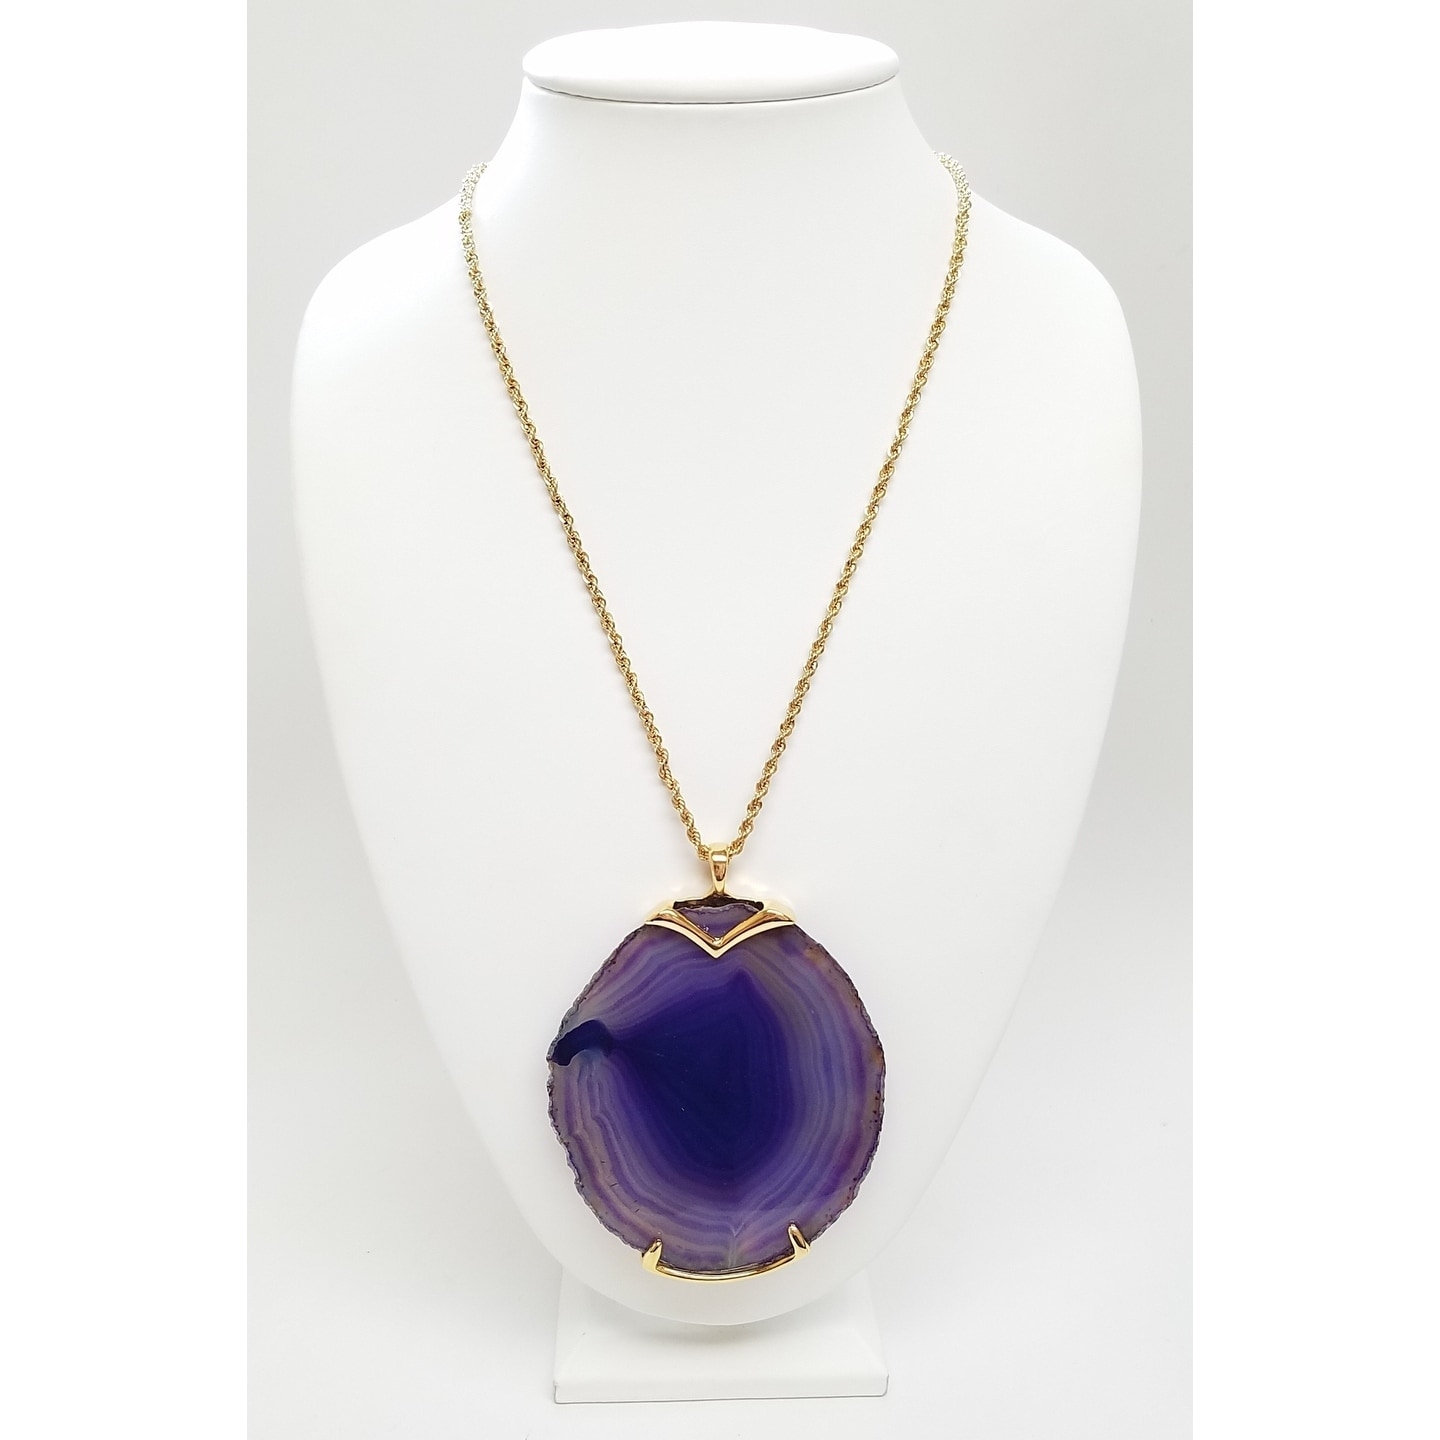 wholesale heart quartz pendants popular item in from color crystal female agate stone amethyst jewelry natural purple necklace shaped for pendant real necklaces